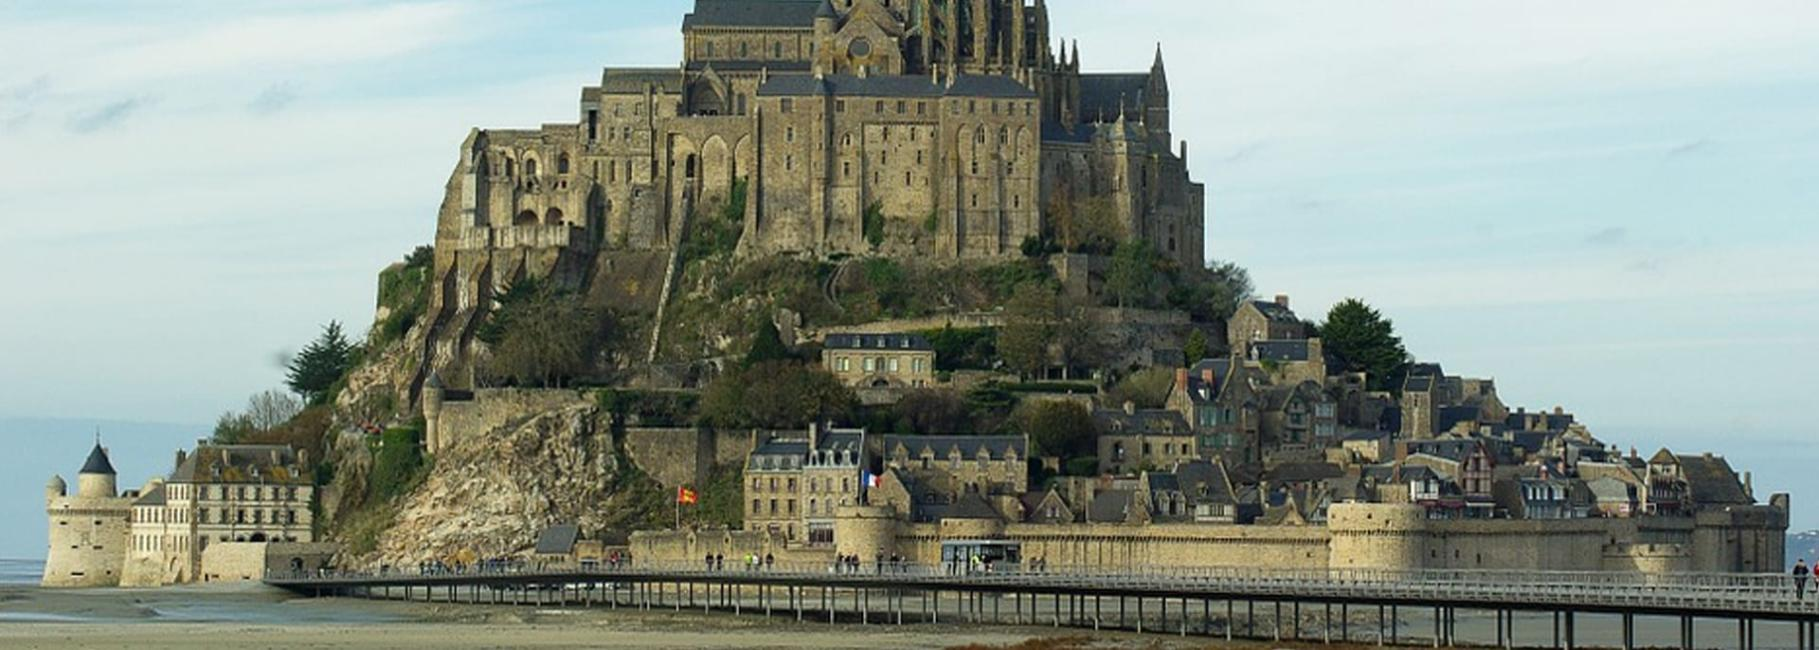 normandy history trip header slk fe